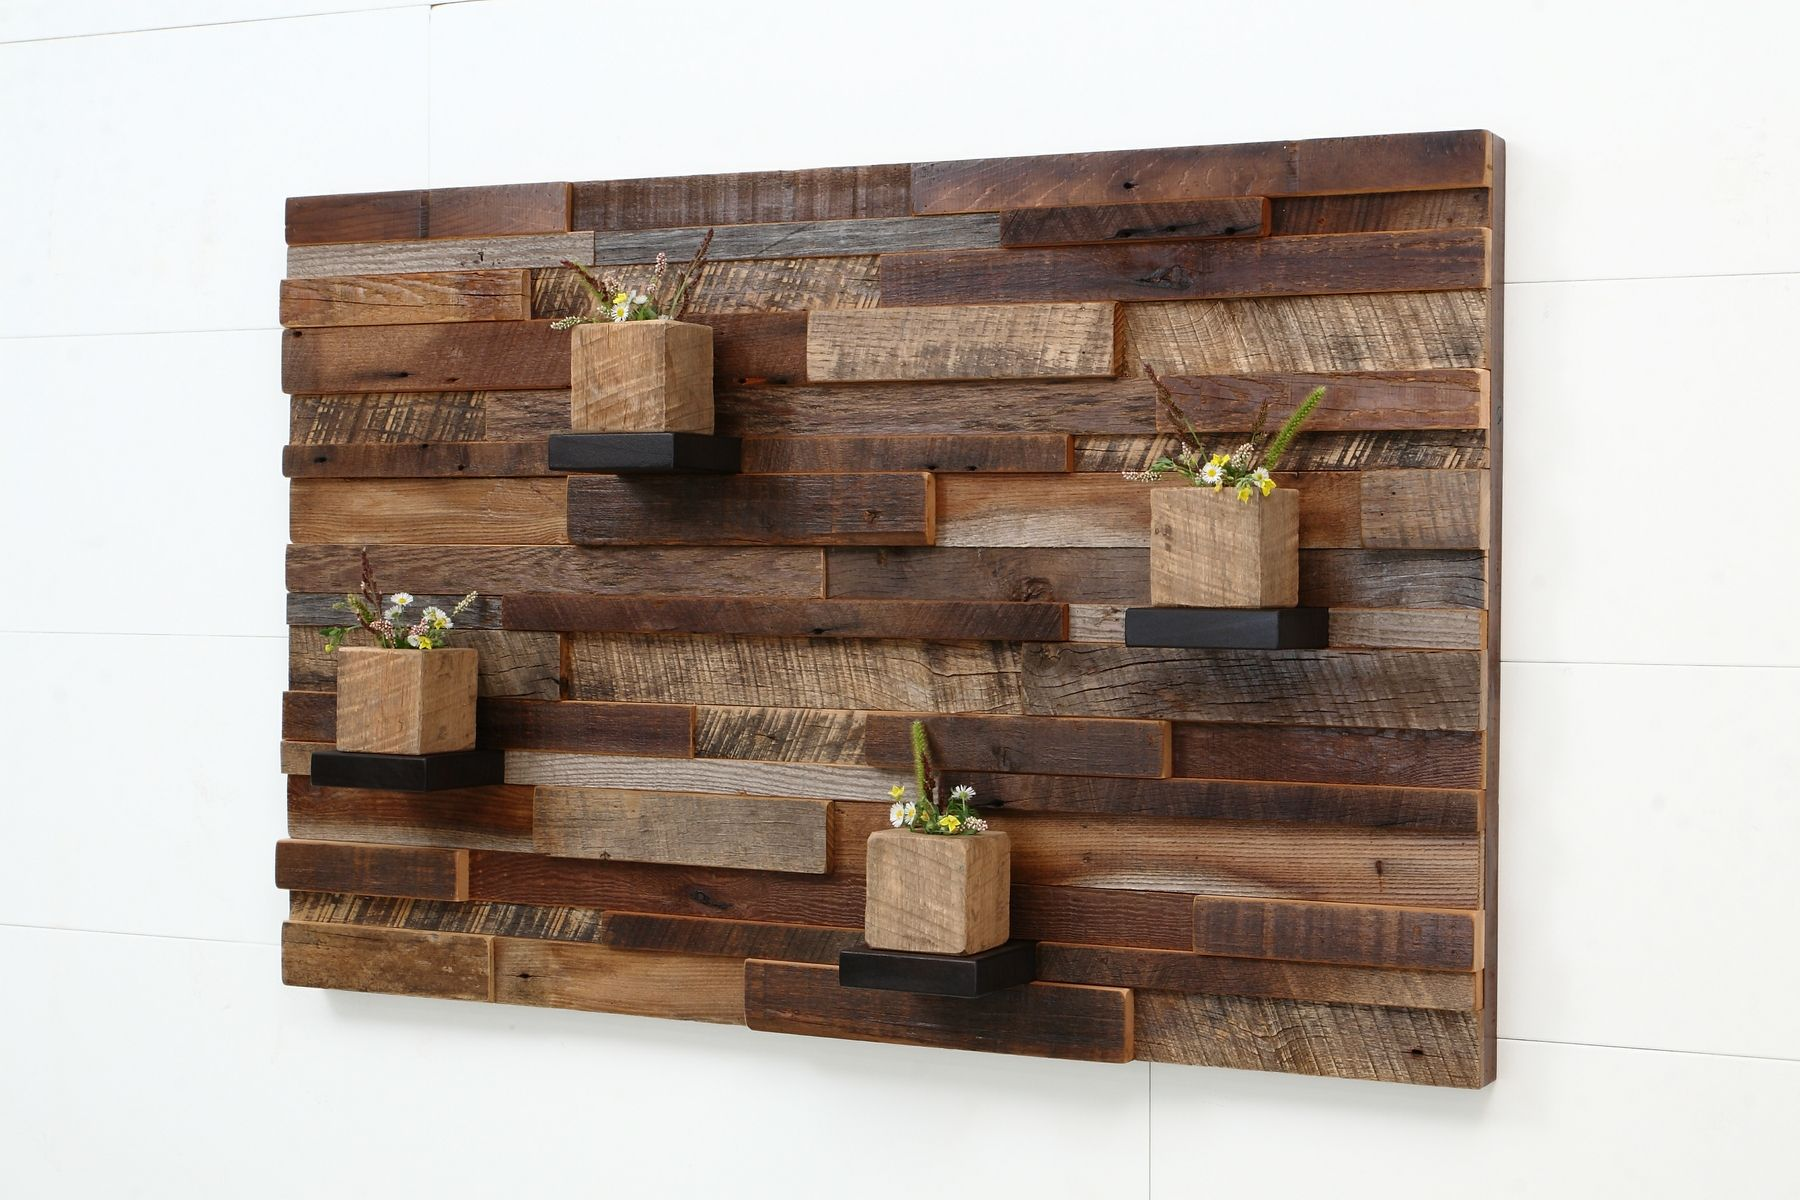 Reclaimed Wood Wall Art Made Of Old Barnwood